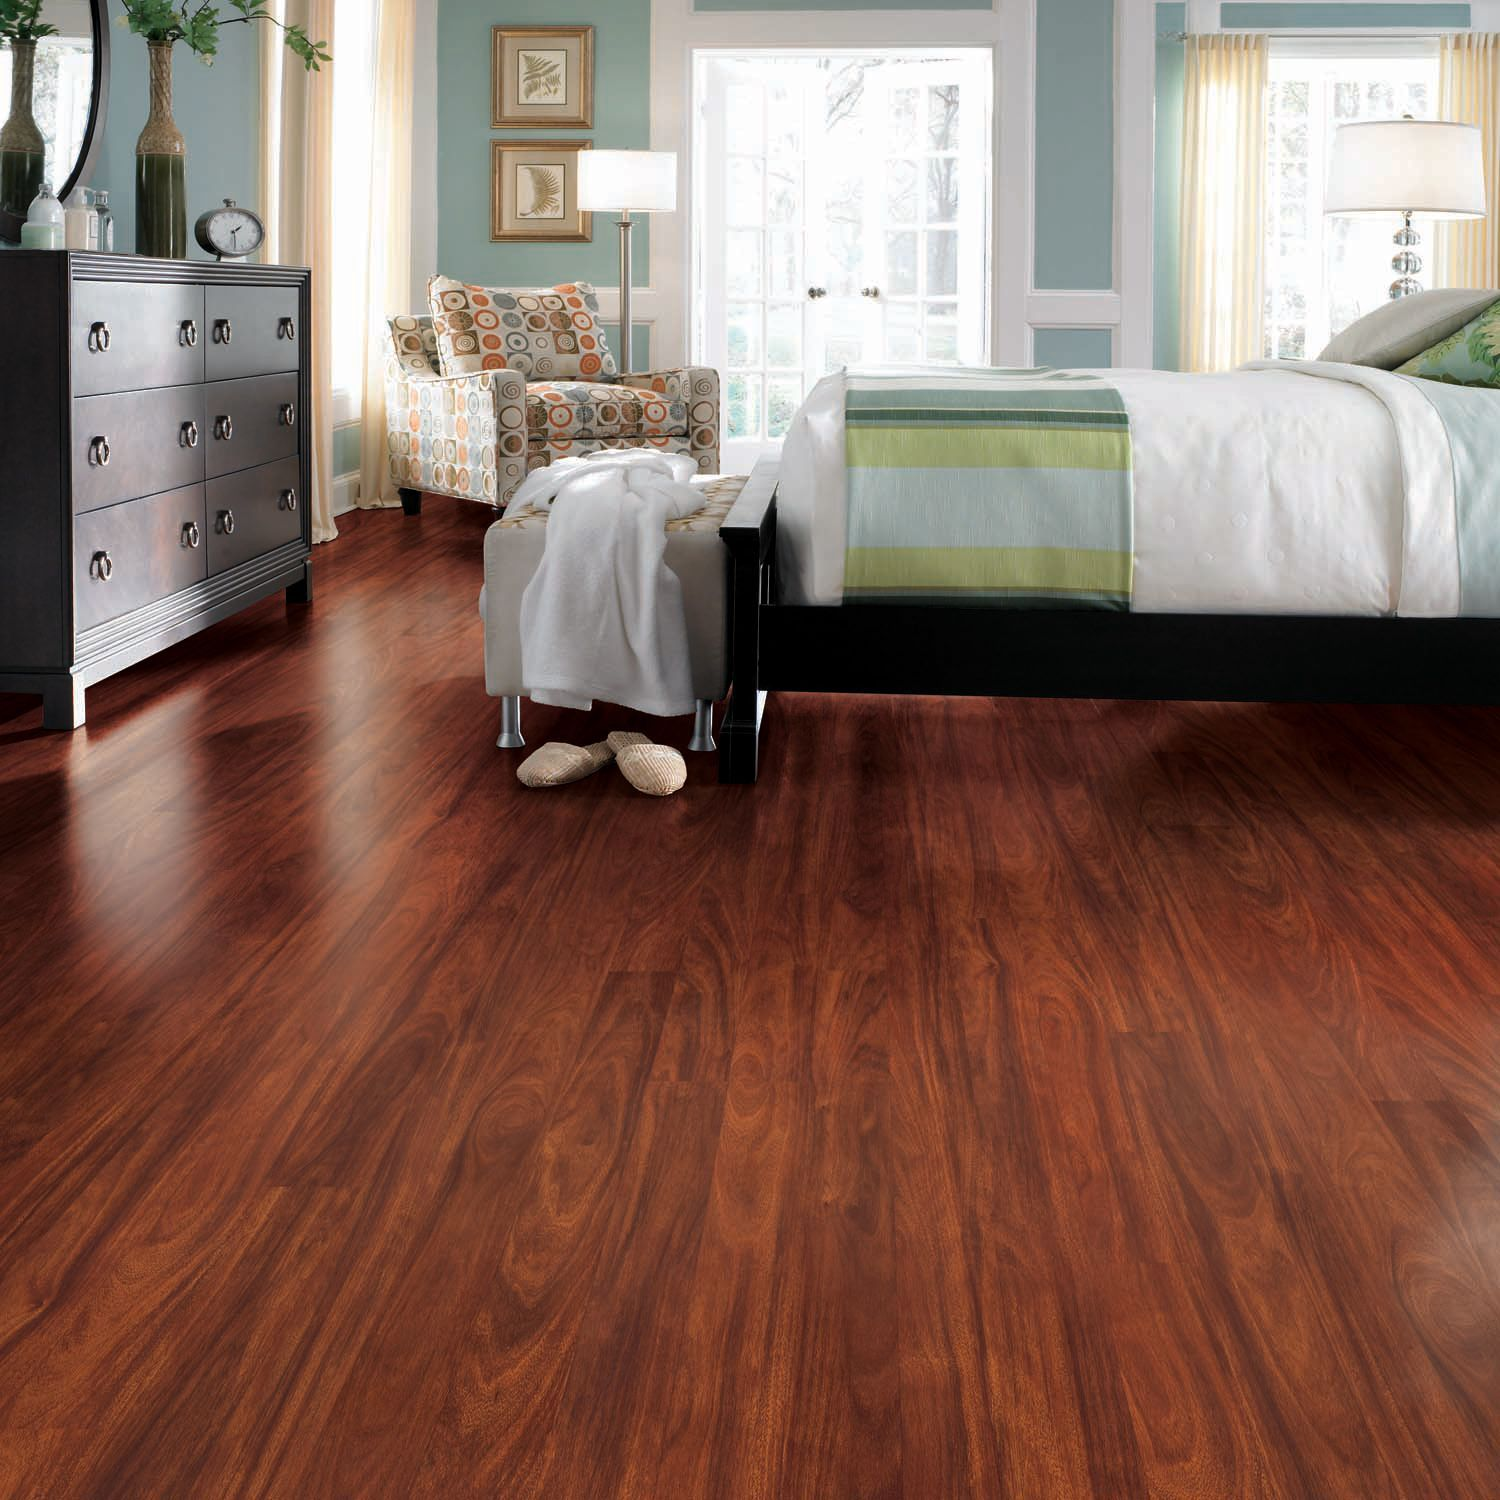 length autumn mahogany high lock p thick wide sq gloss in bruce laminate mm wood ft floors case flooring x click